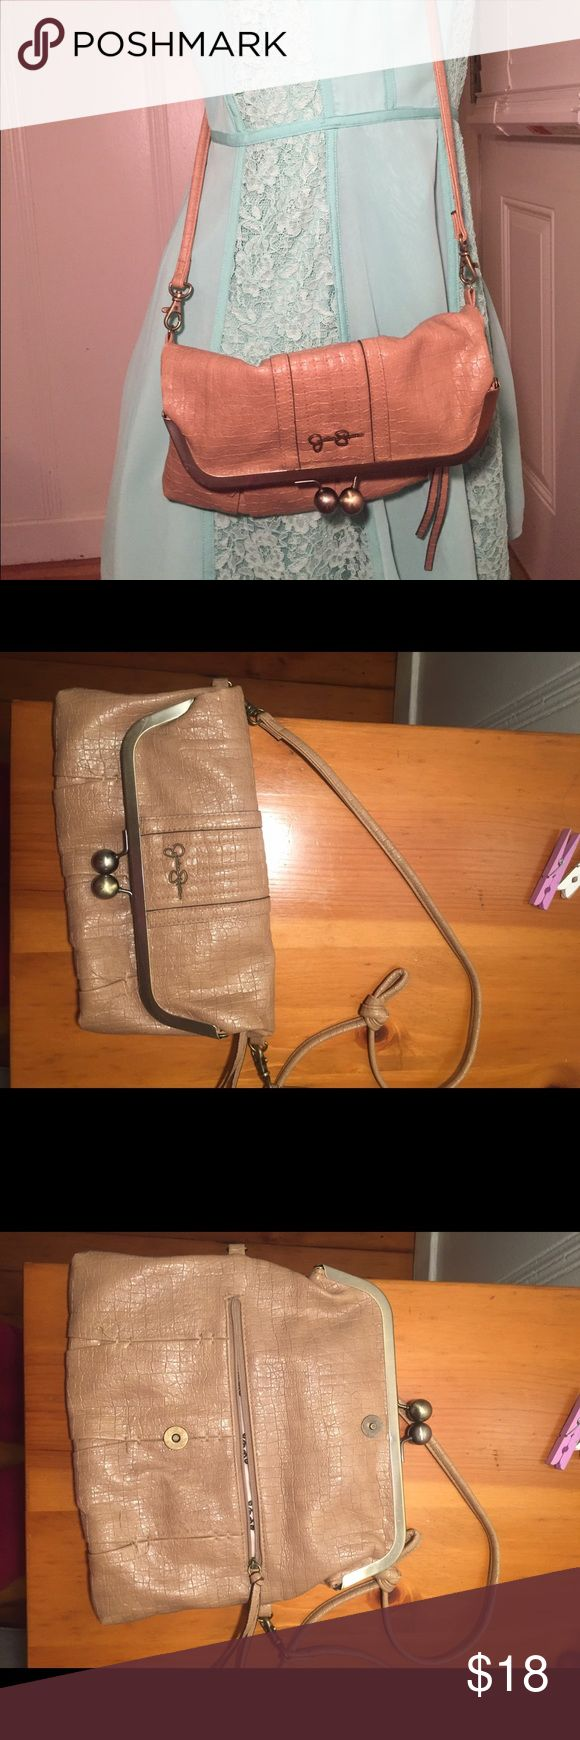 Jessica Simpson side purse Brown Jessica Simpson side purse with faux alligator outside. Great condition Jessica Simpson Bags Crossbody Bags